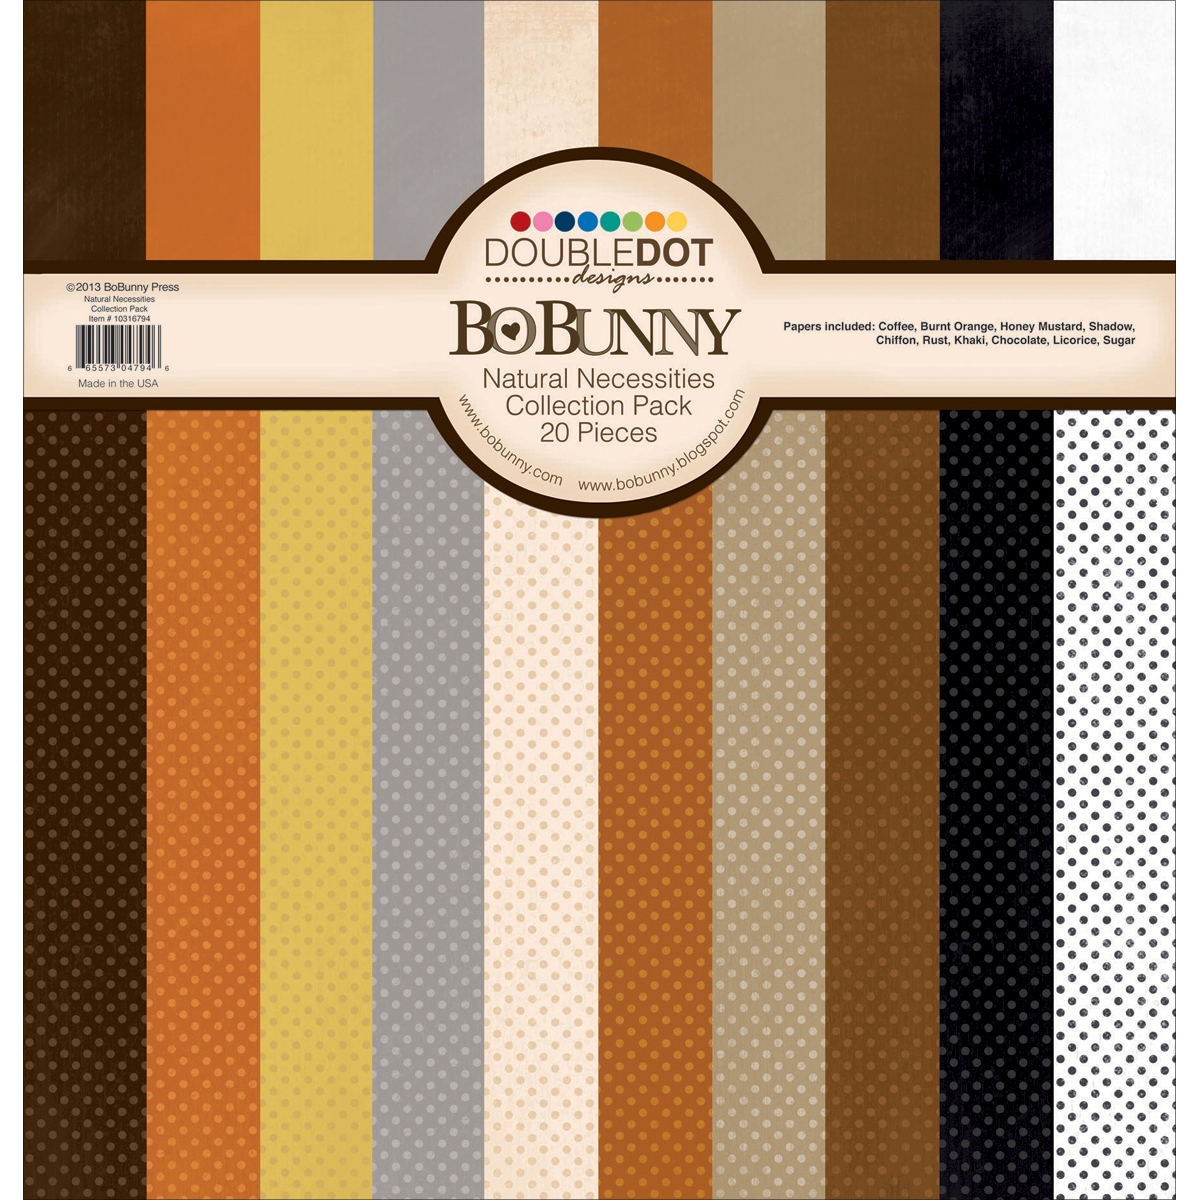 Bo Bunny Double Dot Natural Necessities Cardstock Collection Pack